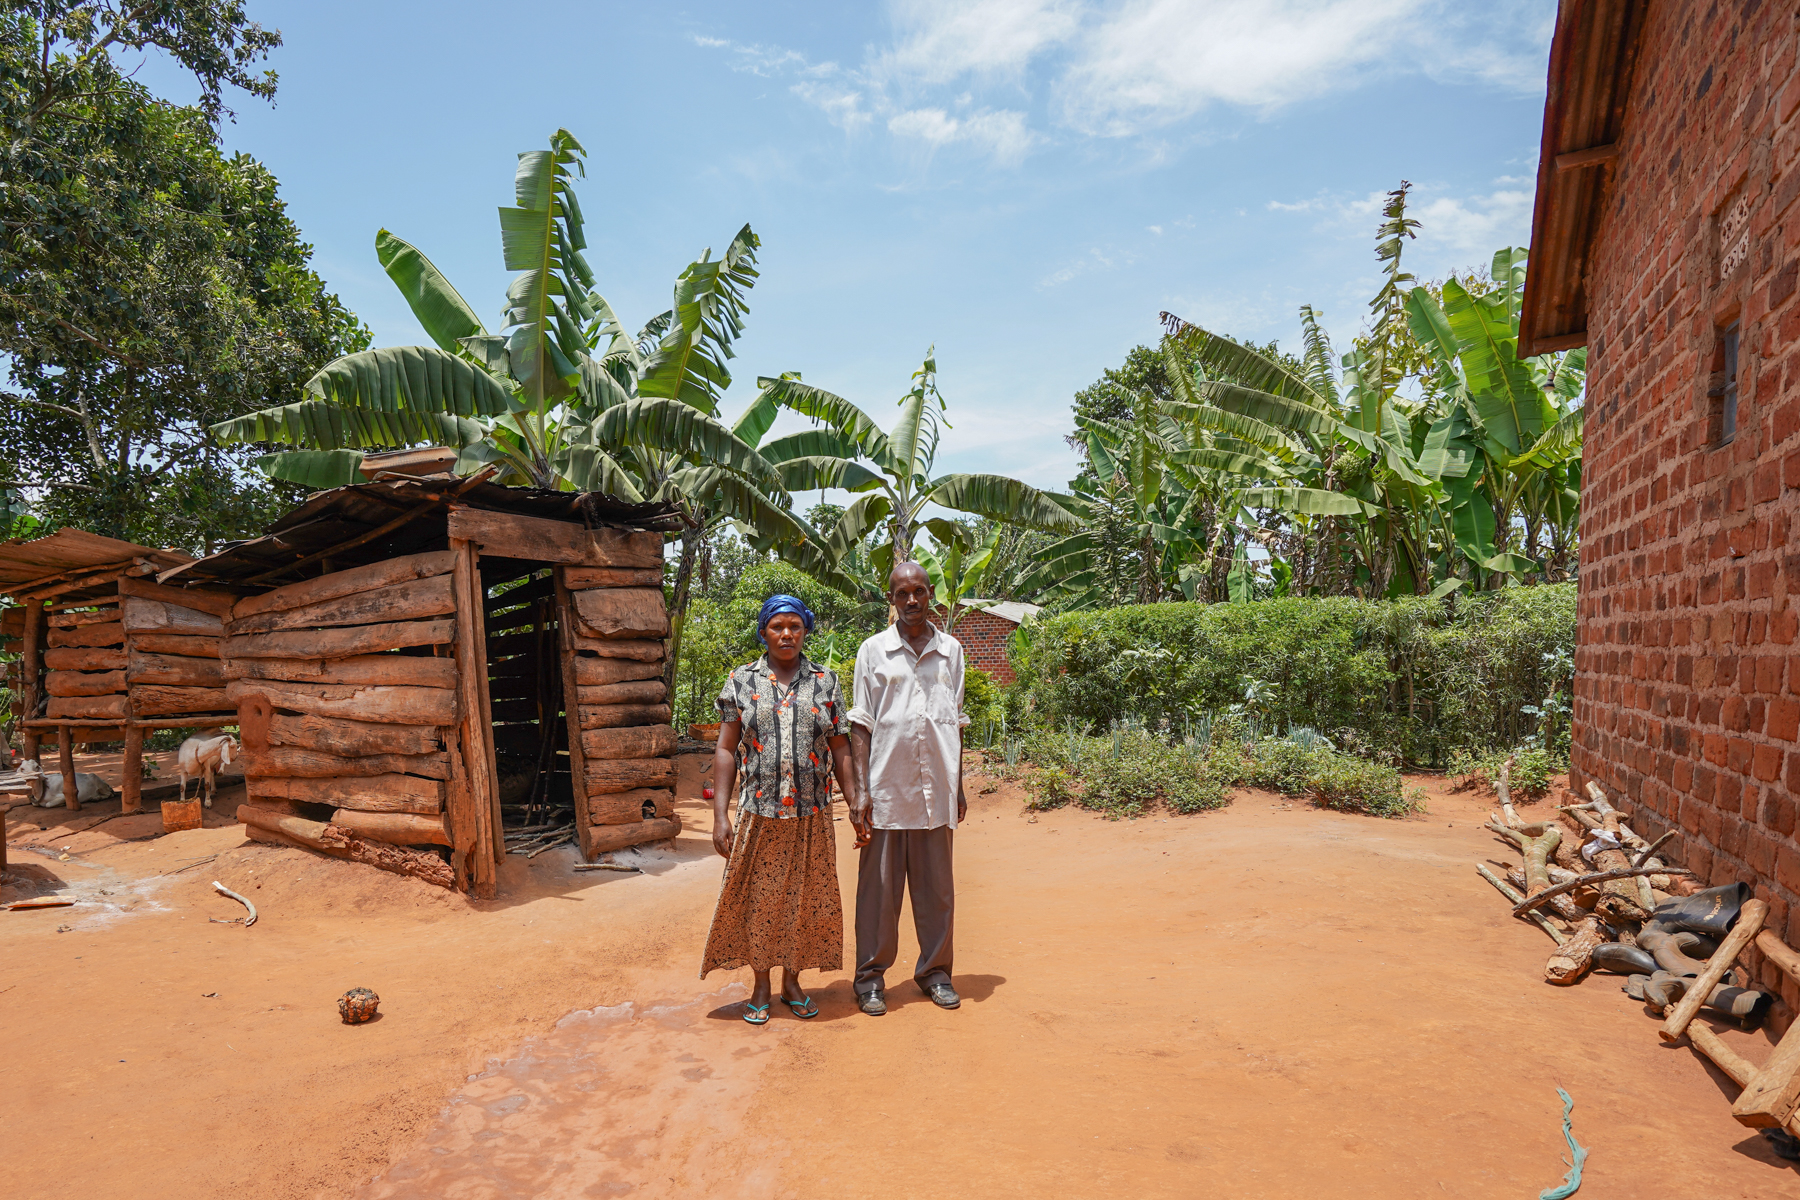 Margaret and Taddeo outside of their home. The building on the left is where Margaret cooks the family's meals